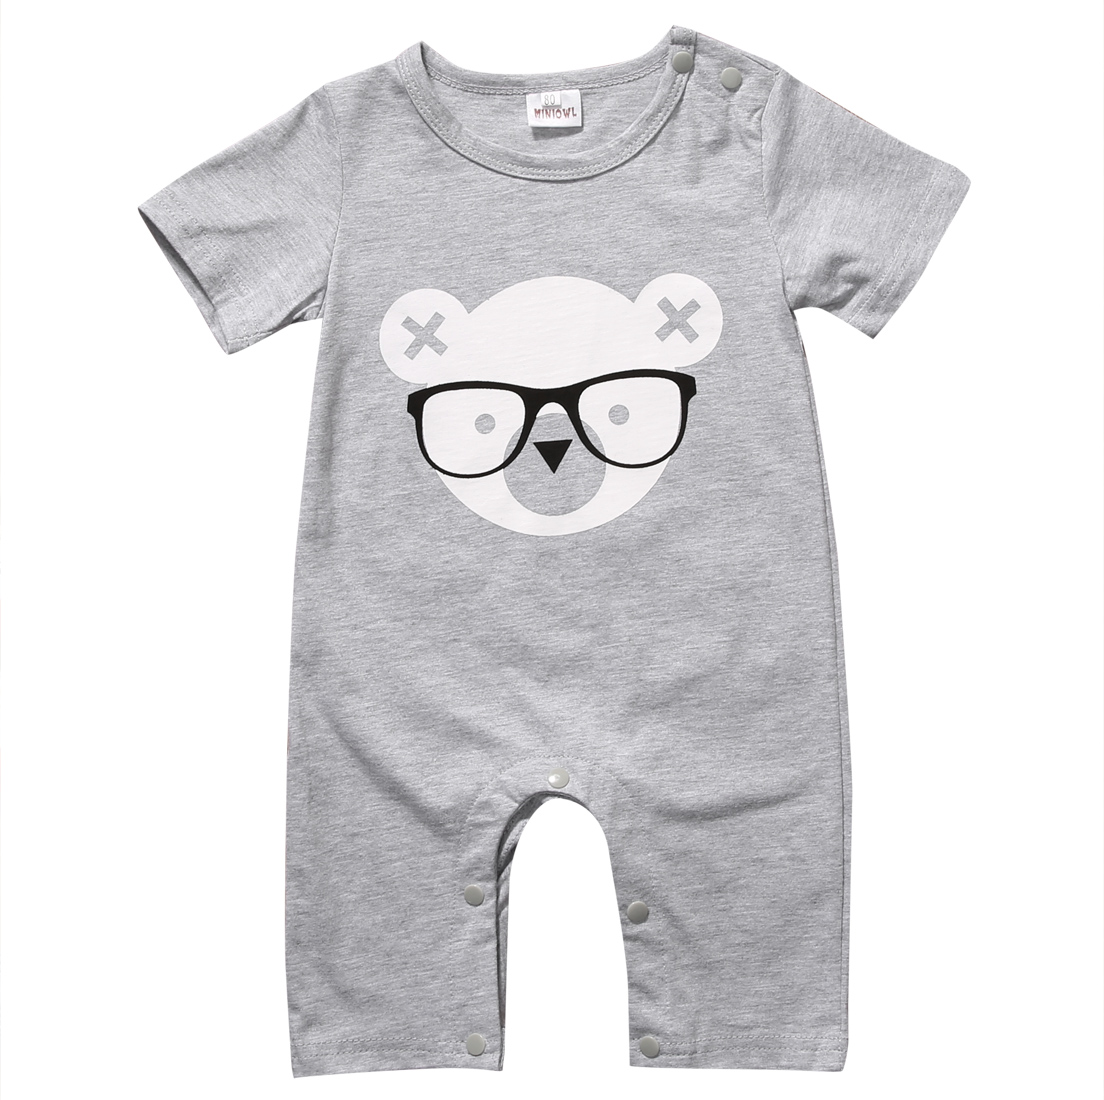 Newborn Toddler Infantil Baby Boys Baby Girls Unisex Short Romper Jumpsuit Outfits Sunsuit Clothes 0-24M